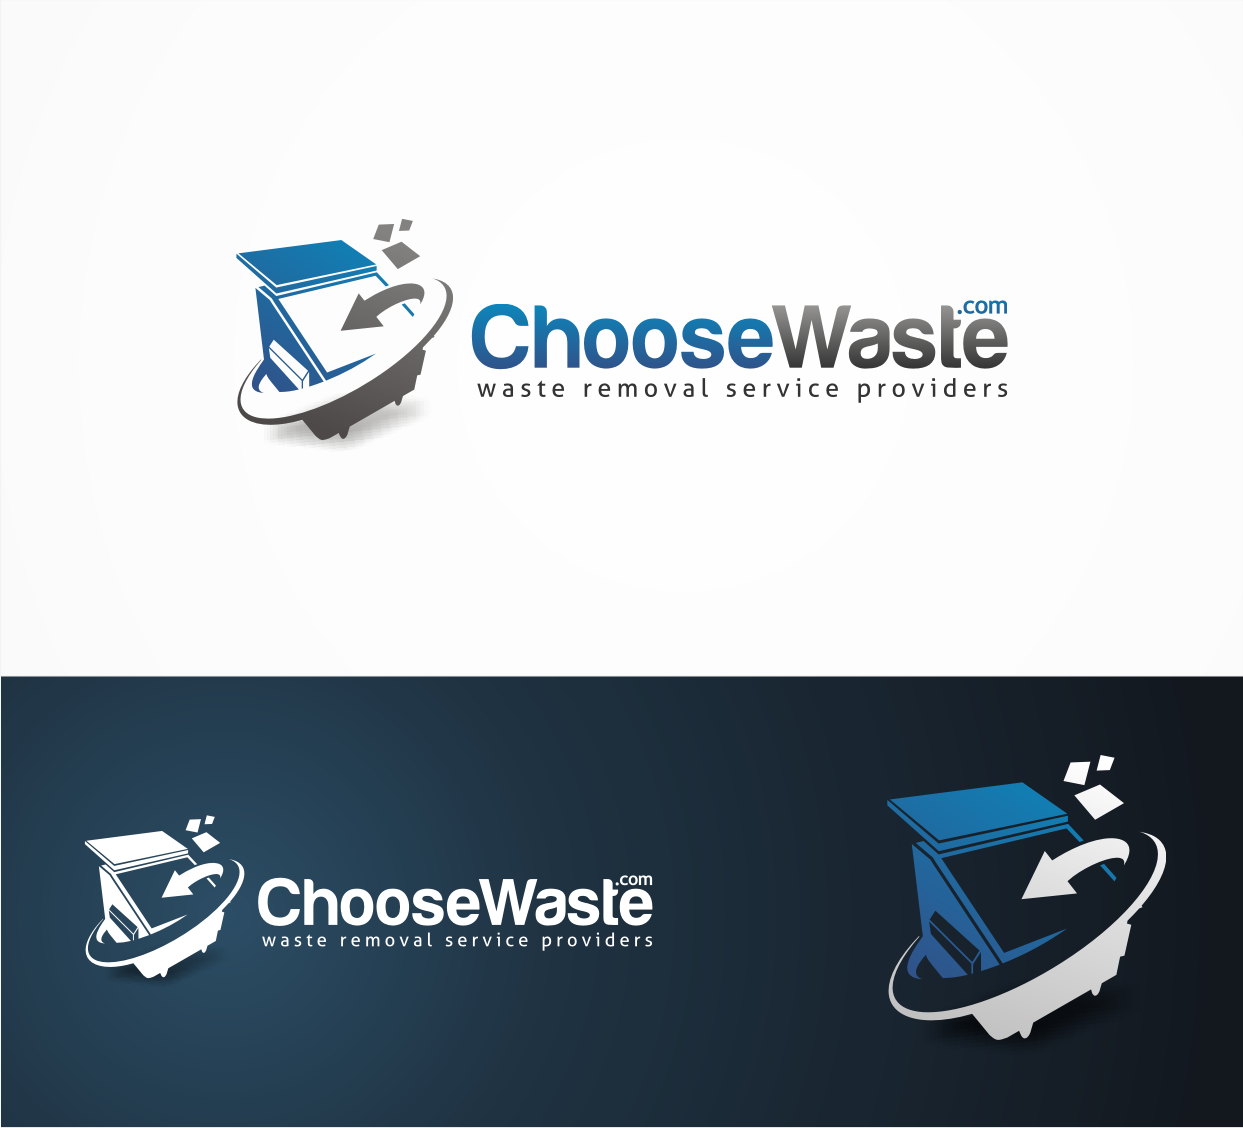 Play an integral role in the ChooseWaste.com Brand